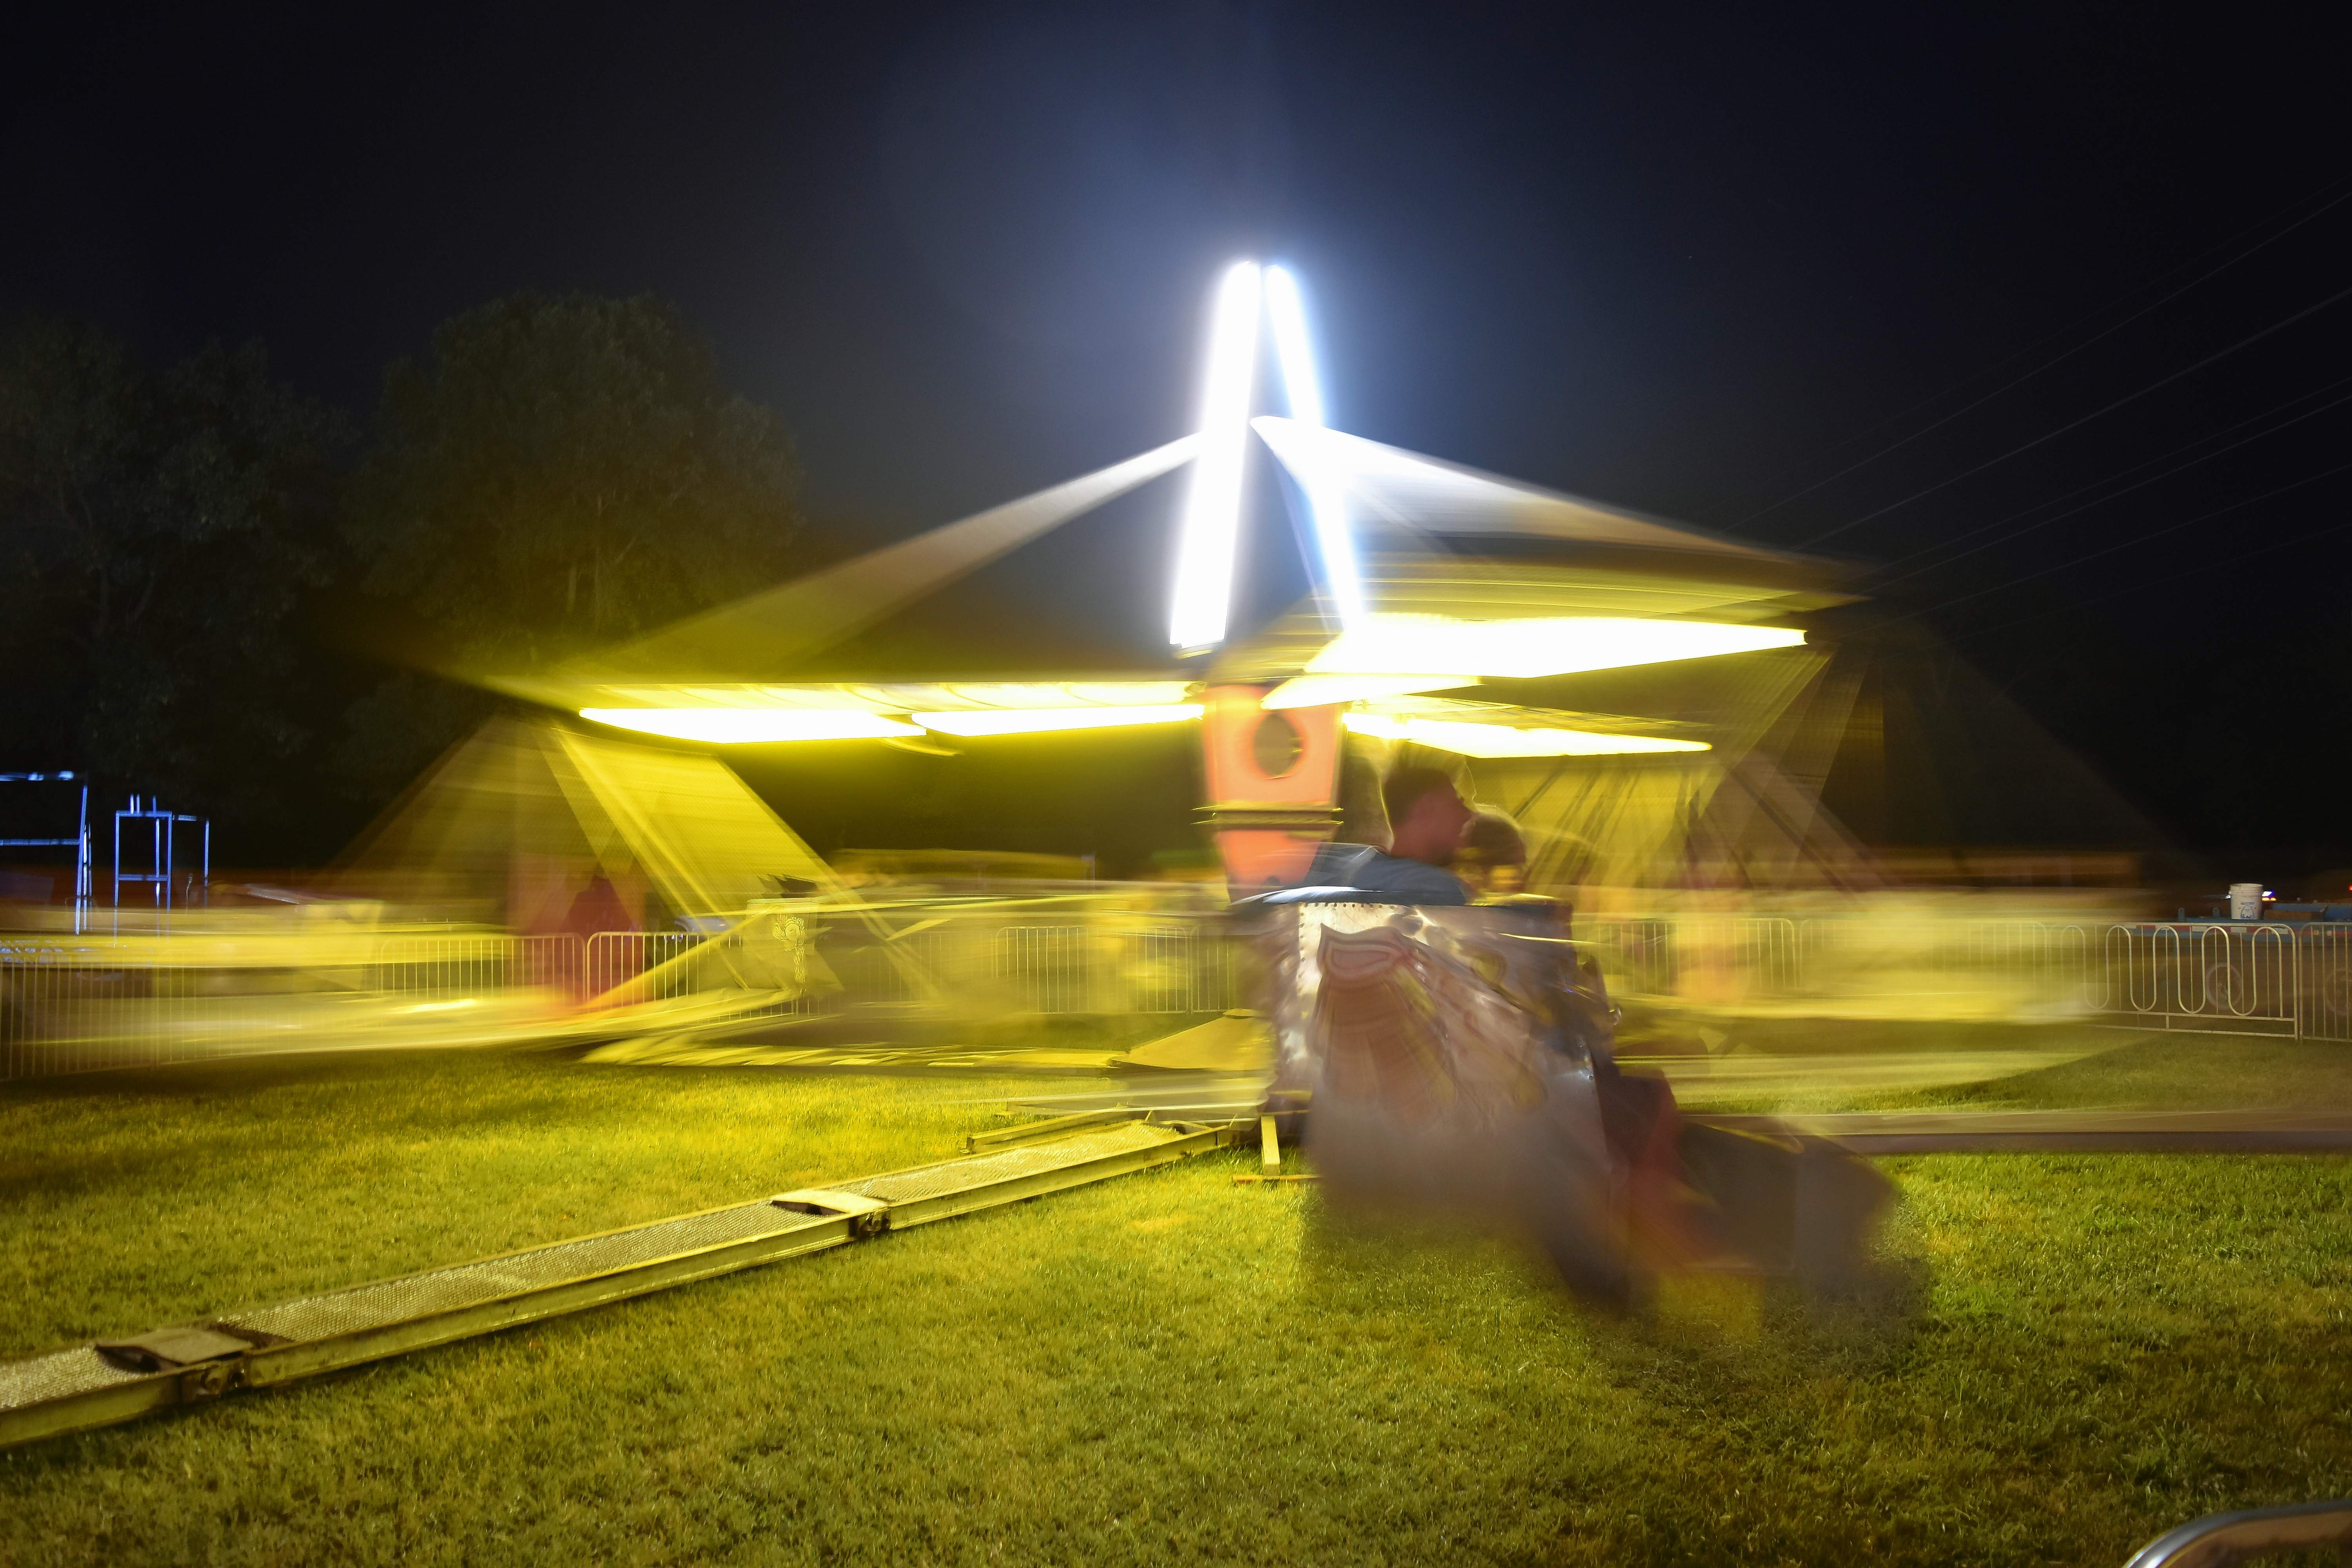 TRAVIS DENEAL PHOTORiders on the Scrambler are a blur as the fair ride rapidly spins.